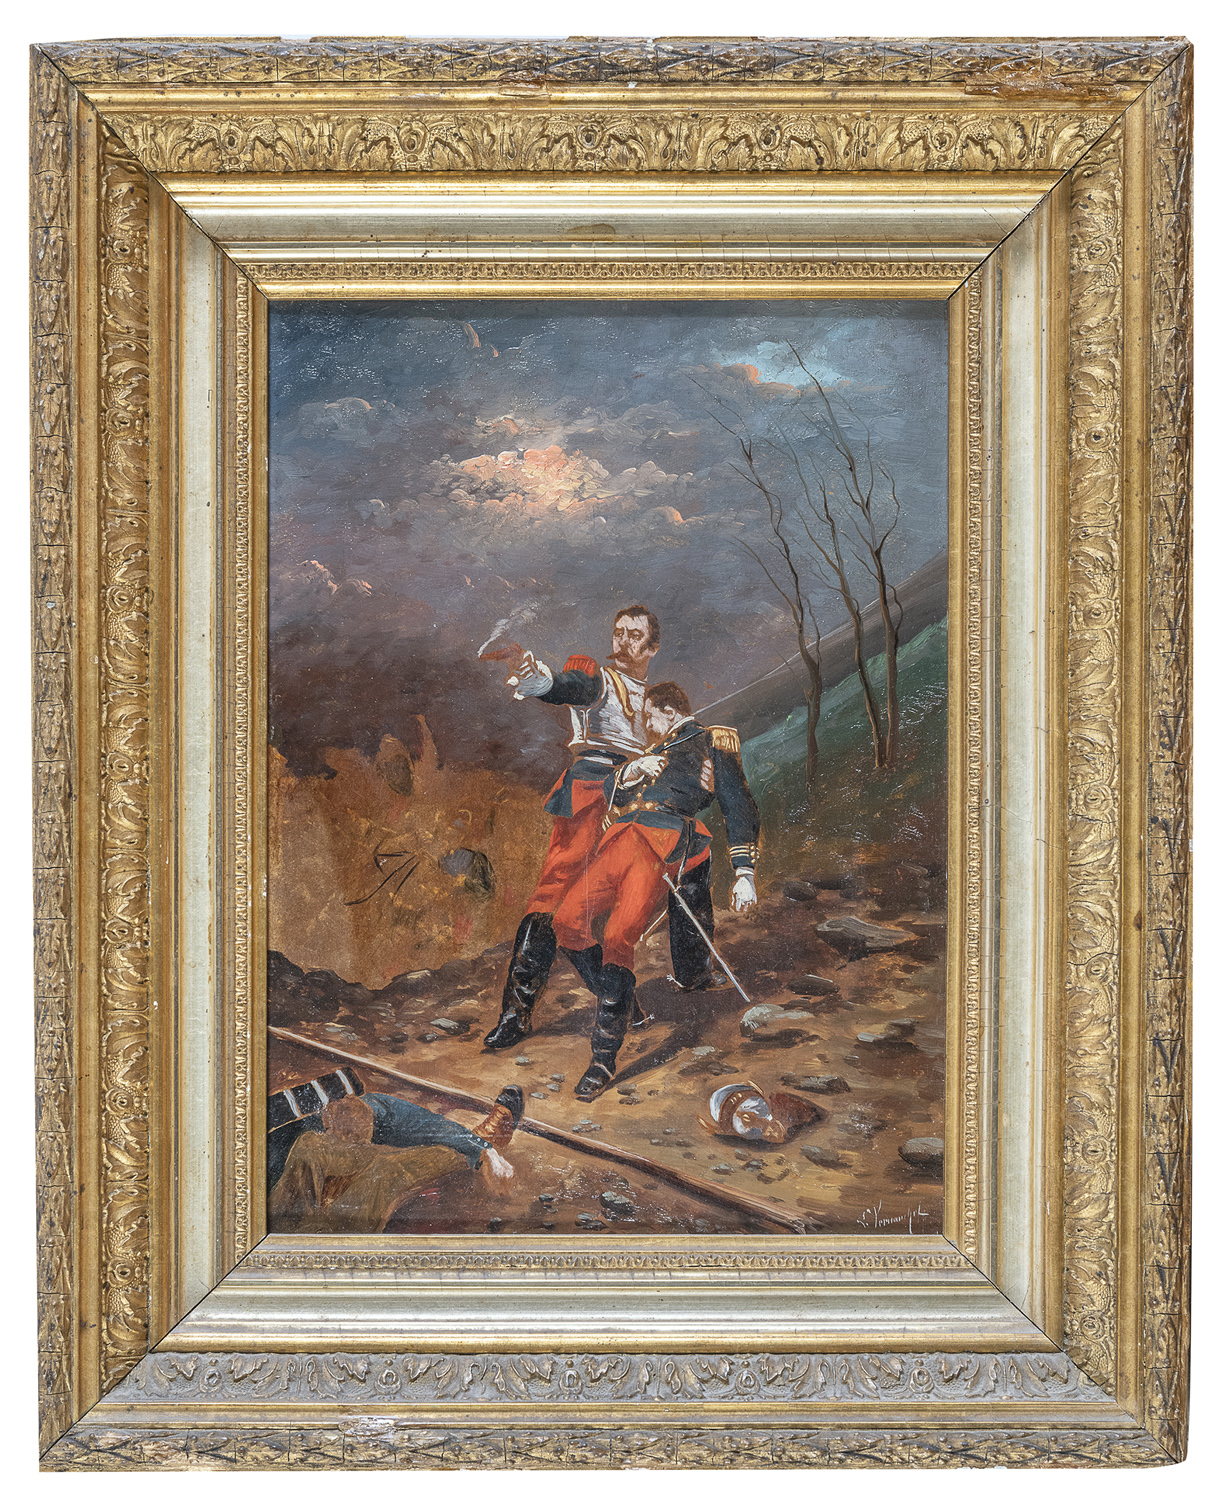 PAIR OF OIL PAINTINGS BY RAOULVERNEUIL ? 19TH-20TH CENTURY